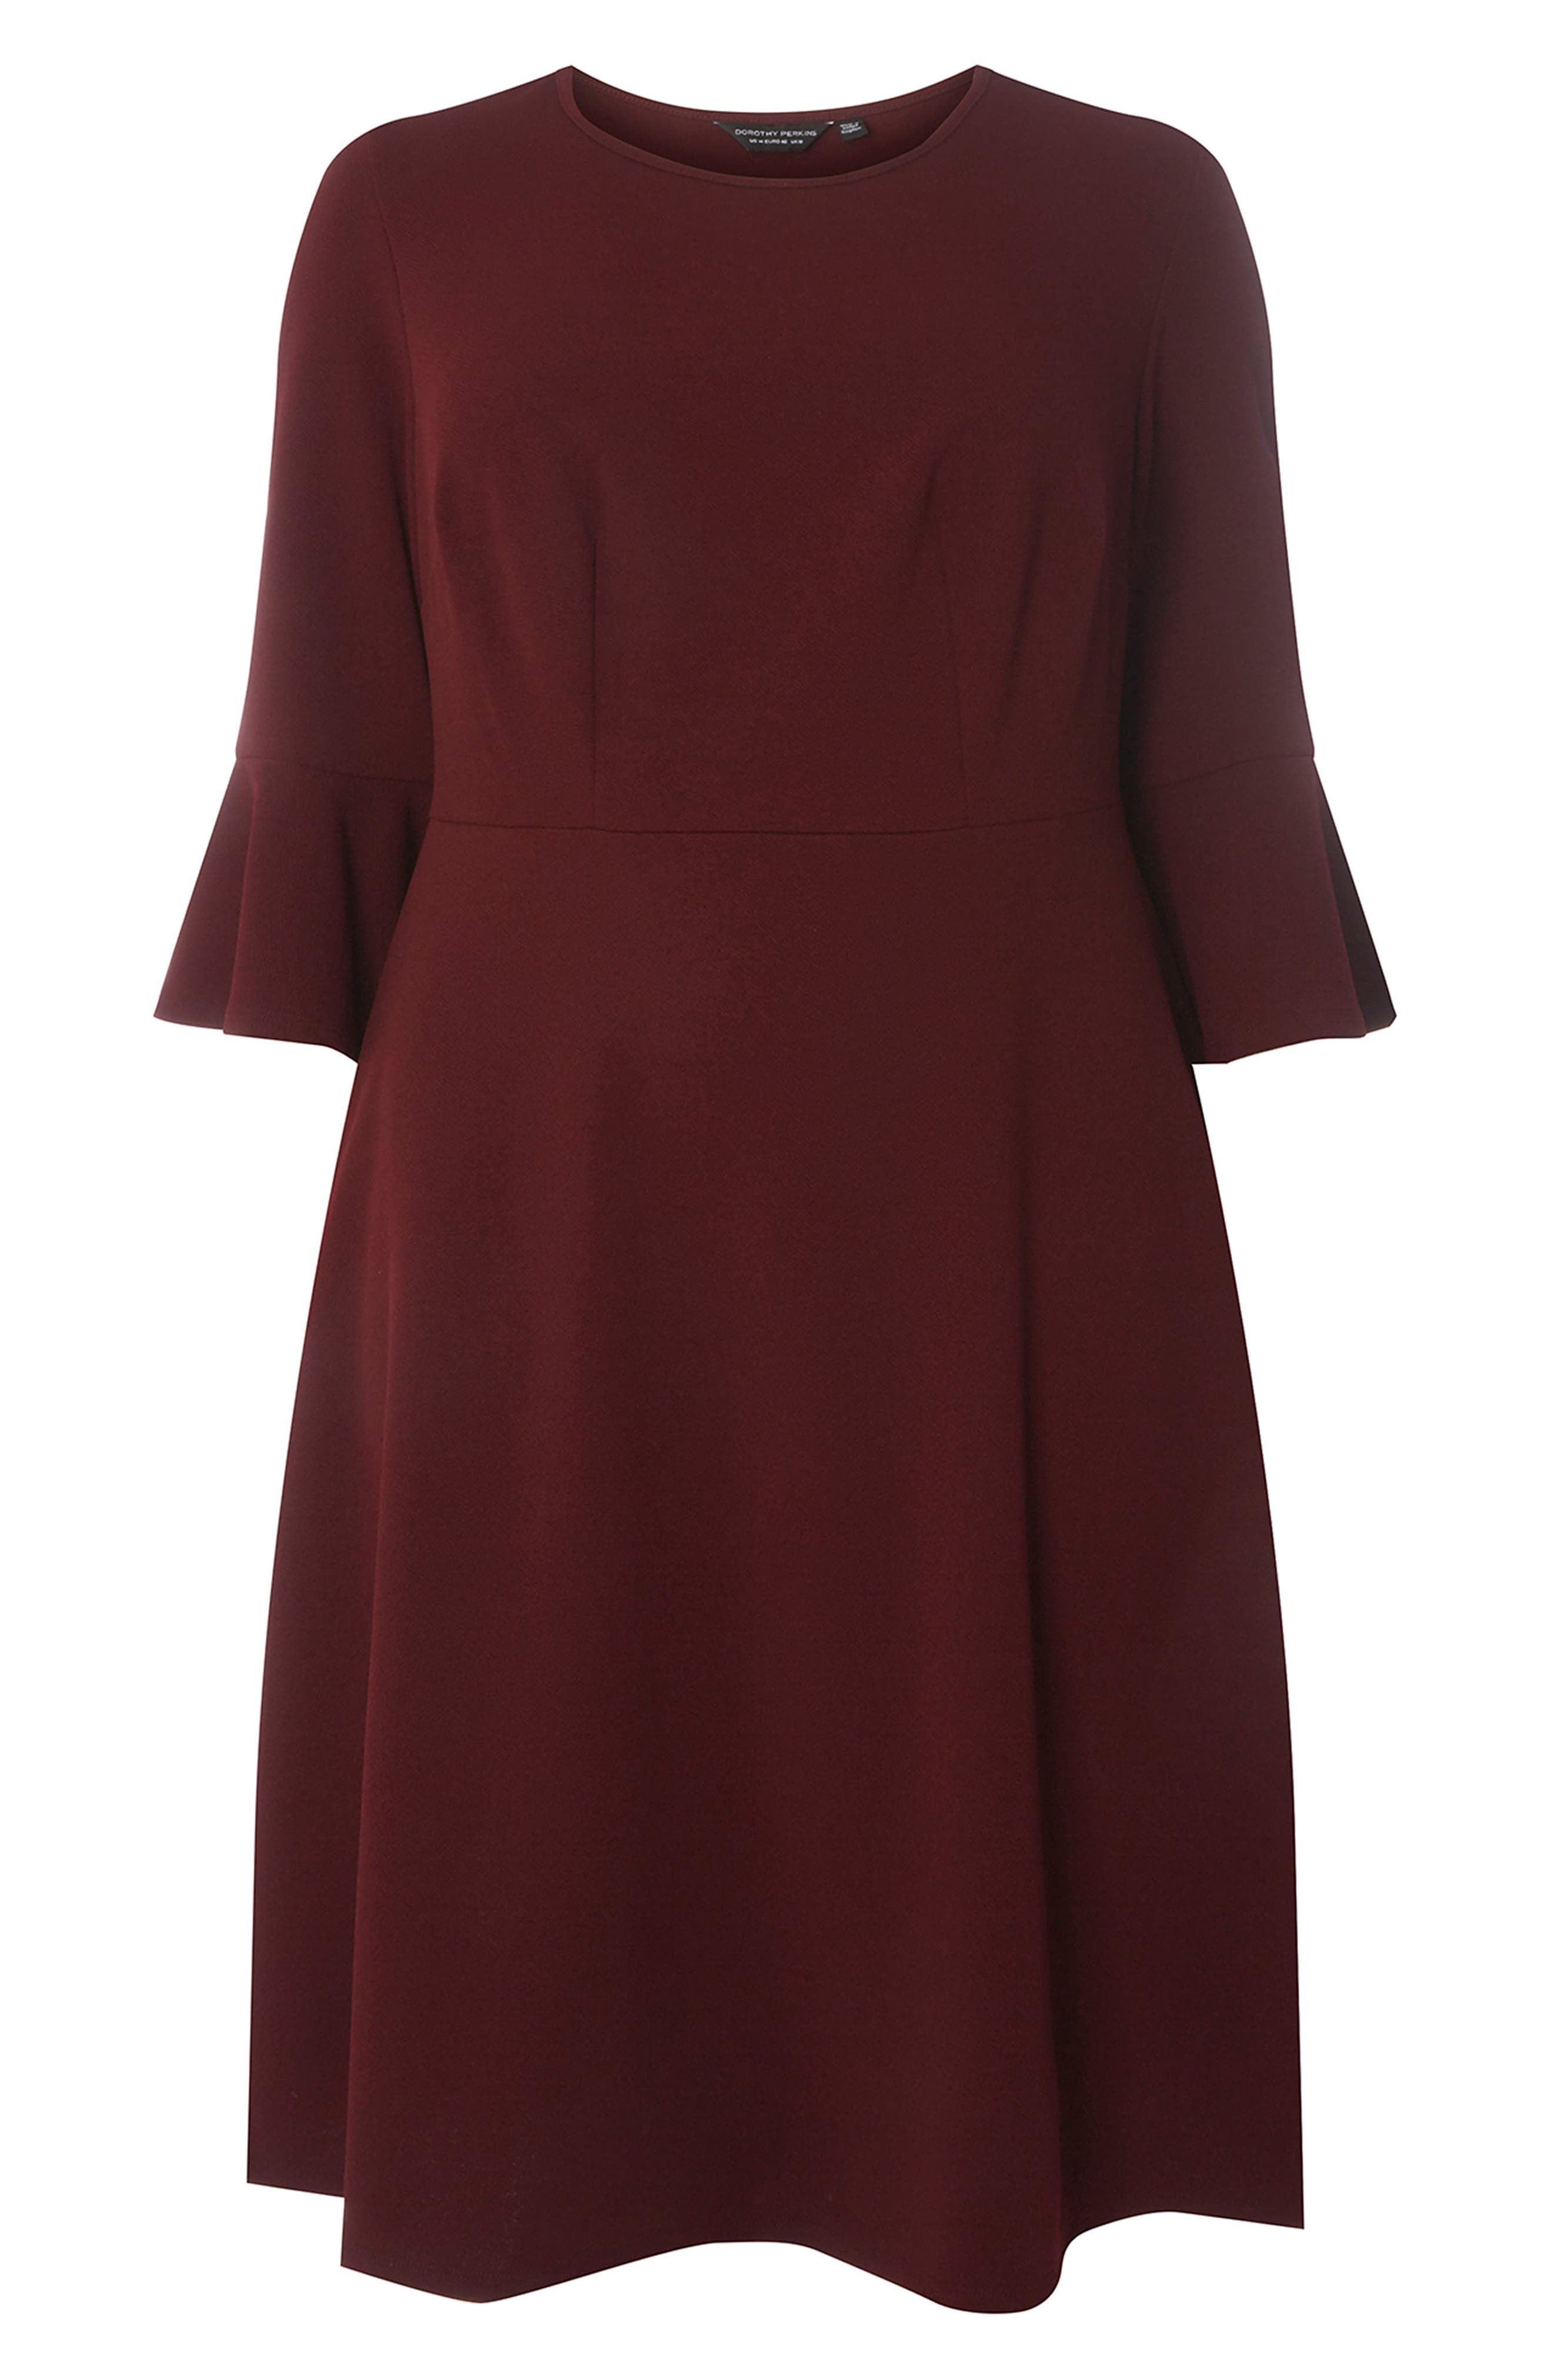 Ruffle Sleeve Fitted Dress,                             Alternate thumbnail 5, color,                             Wine